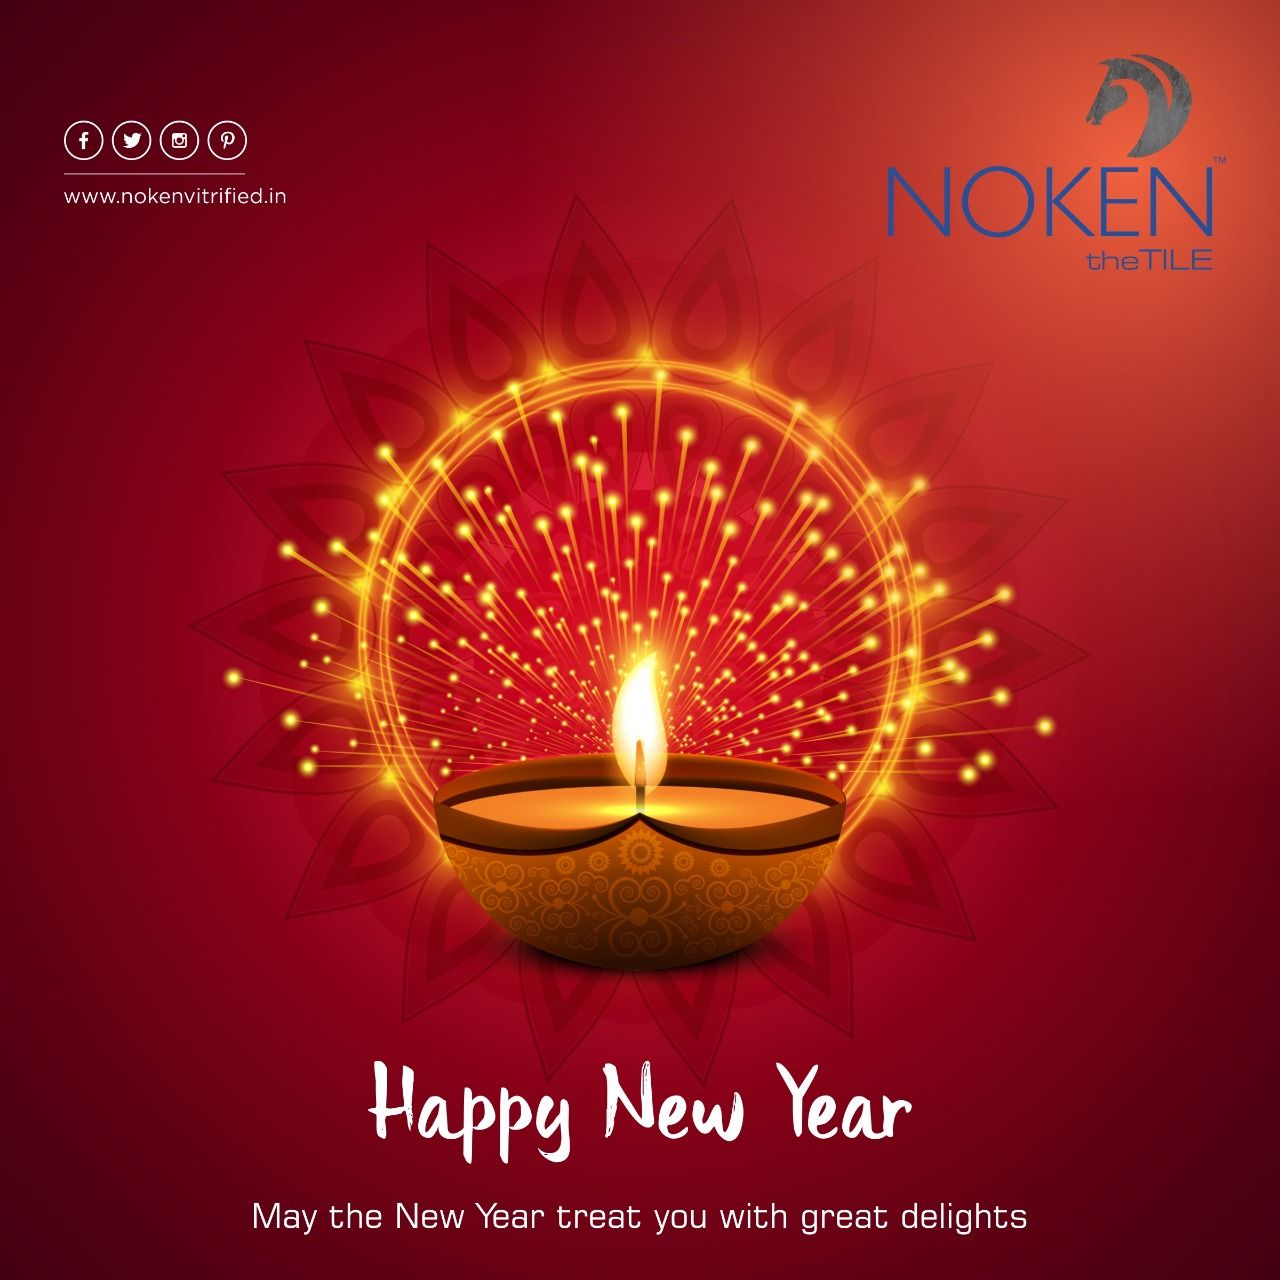 May The New Year Treat You With Great Delights Happy New Year Noken Tiles Ceramic Brand Floortiles Do Navratri Wishes Diwali Pictures Creative Posters